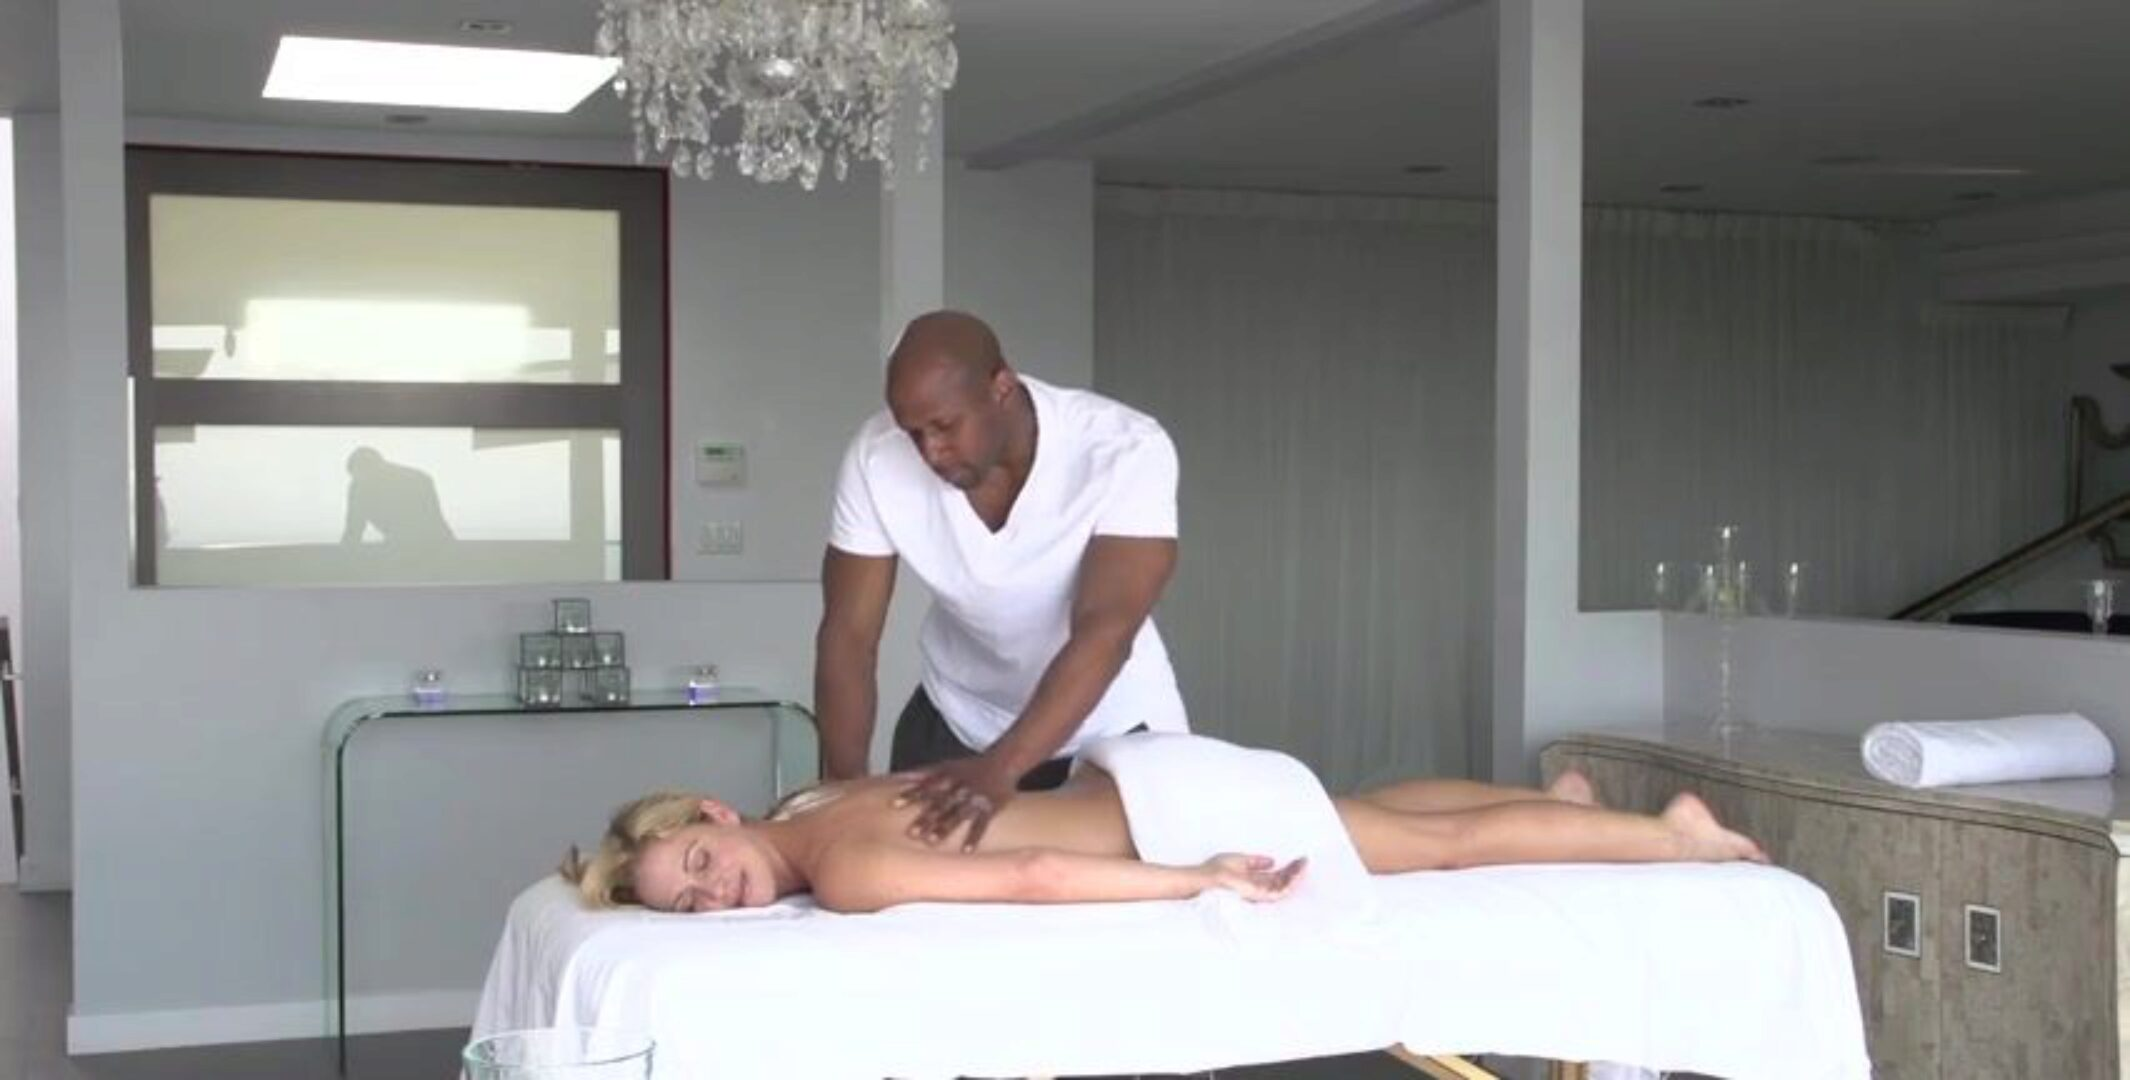 Blacked Hot Southern Blonde Takes Big Black Cock - Free Porn Videos - YouPorn Watch BLACKED Hot Southern Blonde Takes Big Black Cock online on YouPorn.com. YouPorn is the largest Amateur porn clip web site with the best selection of free high quality deep throat movies Enjoy our HD porno movies on any tool of your choosing!